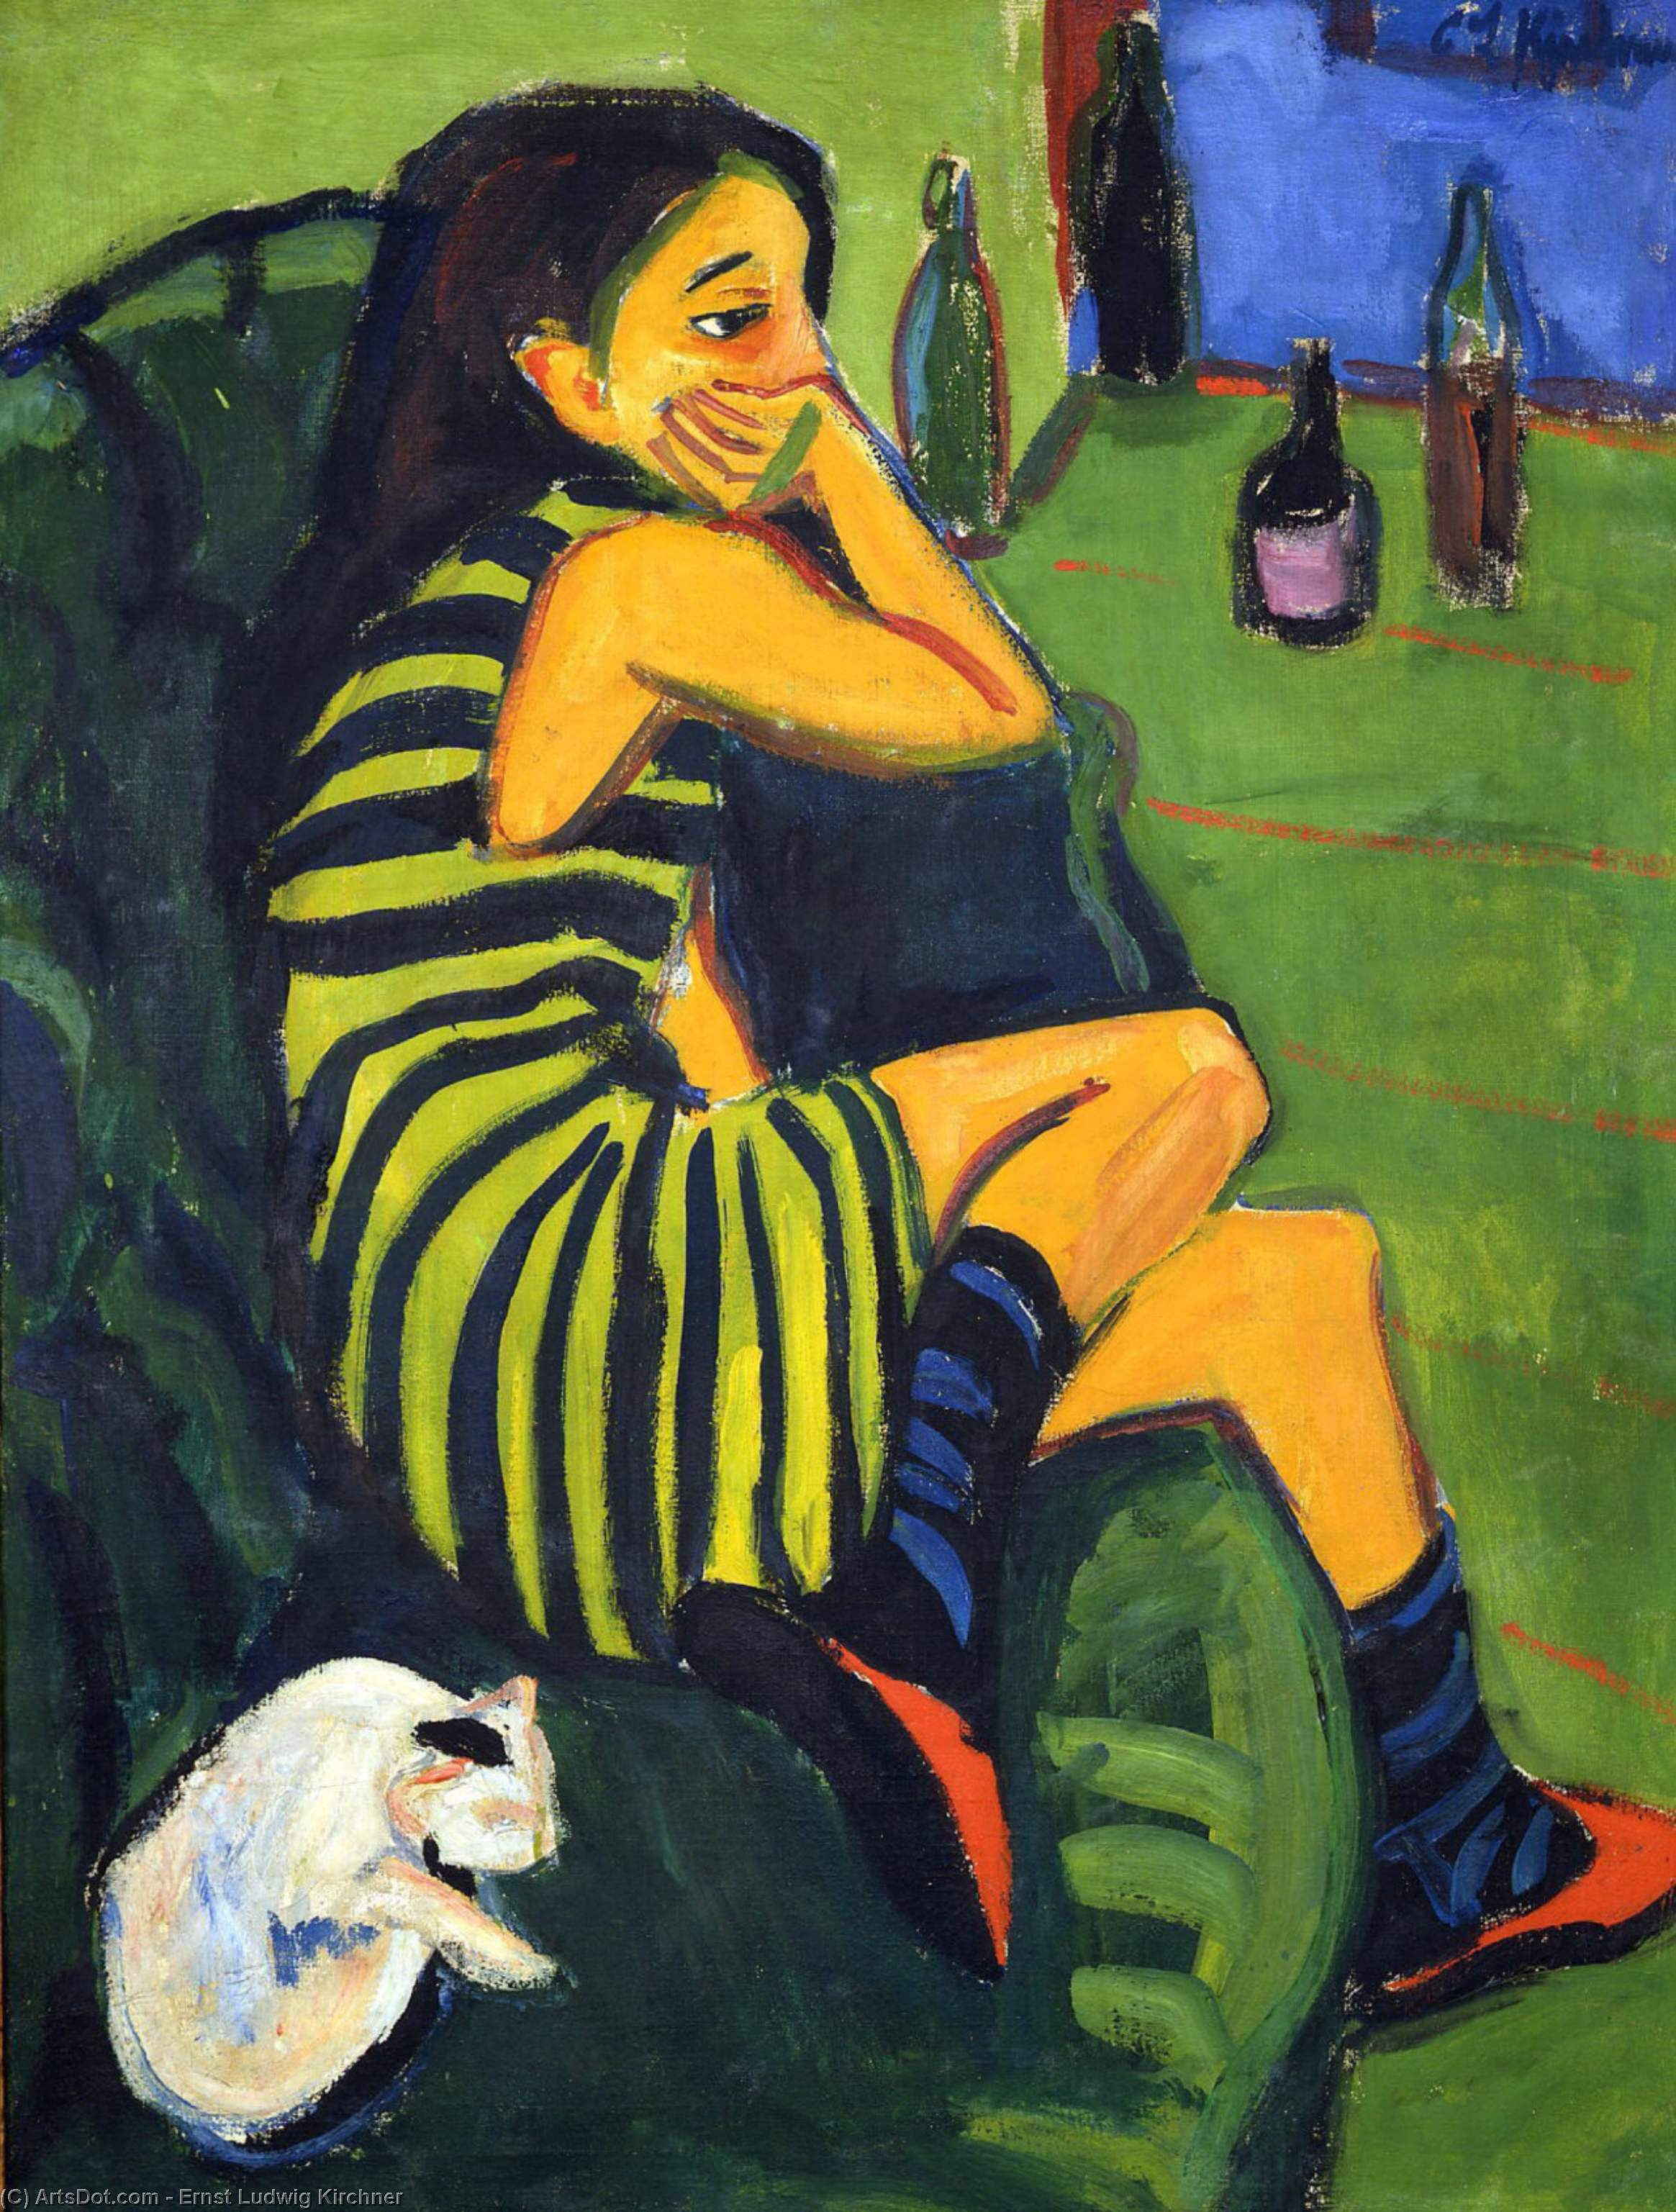 Wikioo.org - The Encyclopedia of Fine Arts - Painting, Artwork by Ernst Ludwig Kirchner - Female Artist